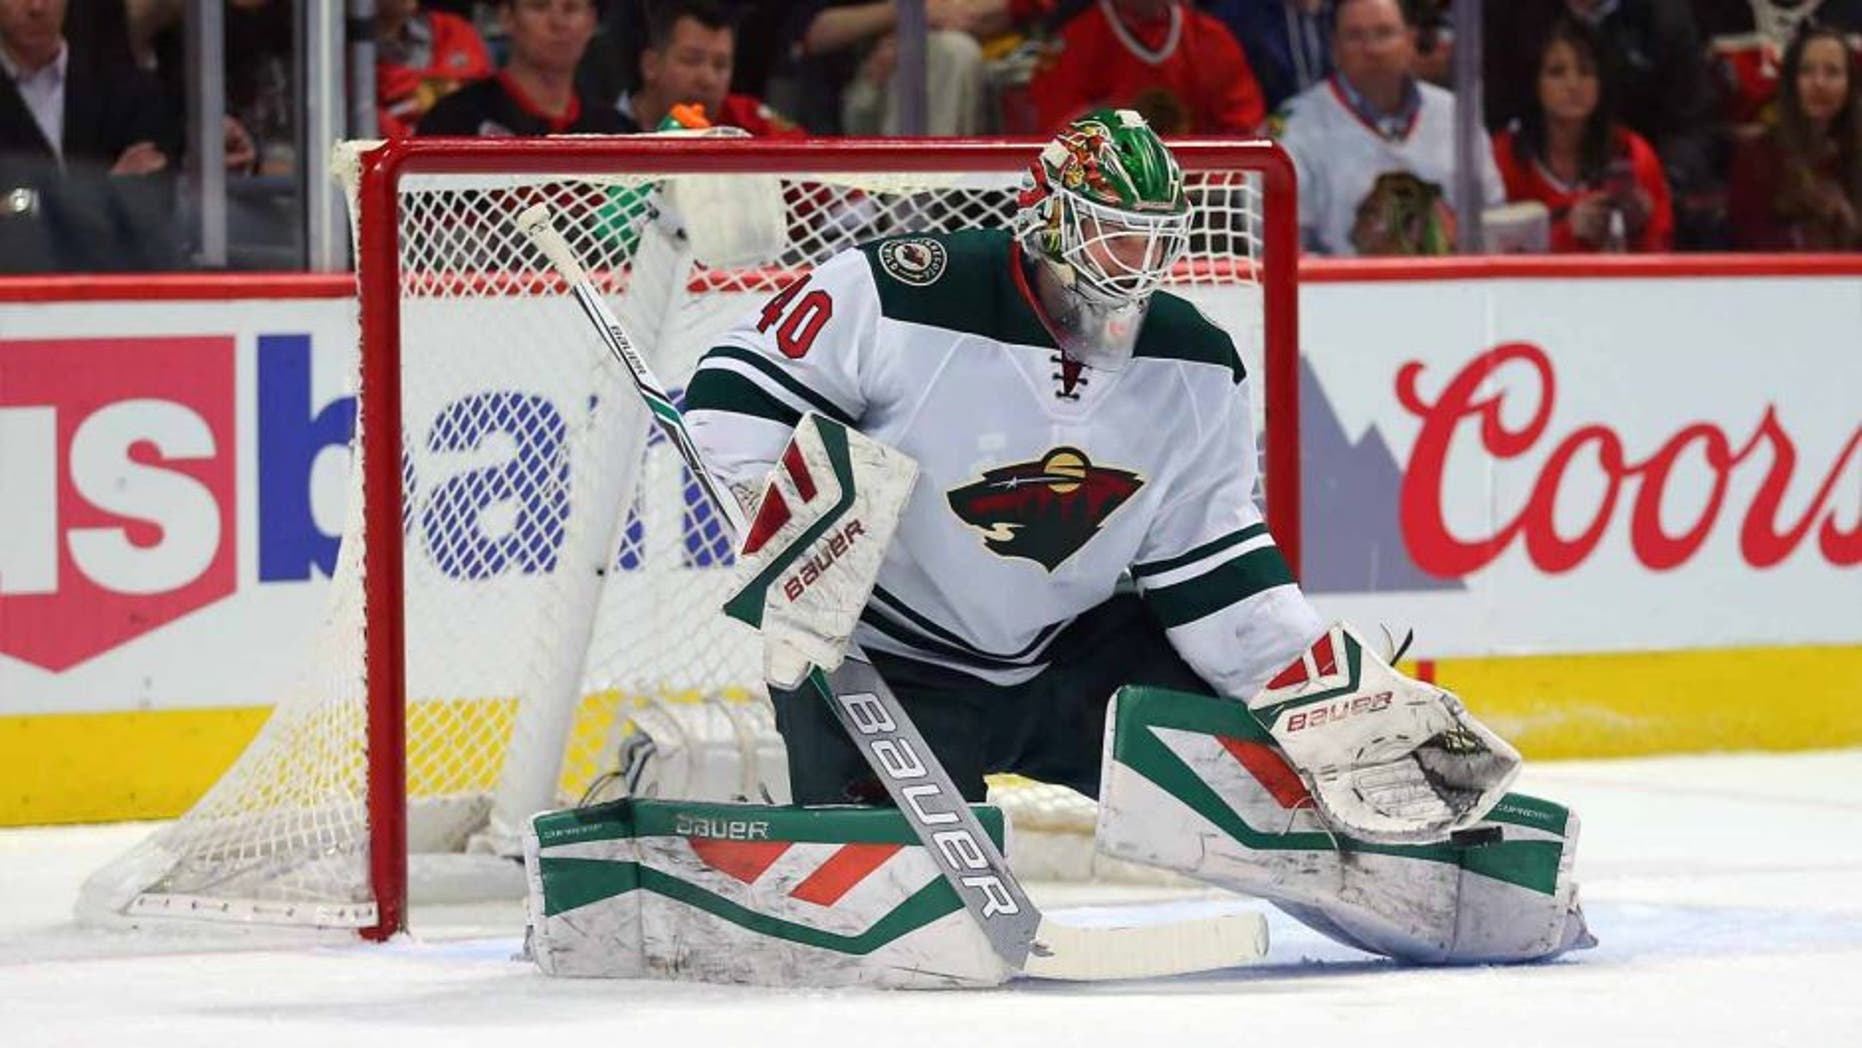 Minnesota Wild goalie Devan Dubnyk makes a save against the Chicago Blackhawks at the United Center in Chicago on March 20, 2016.